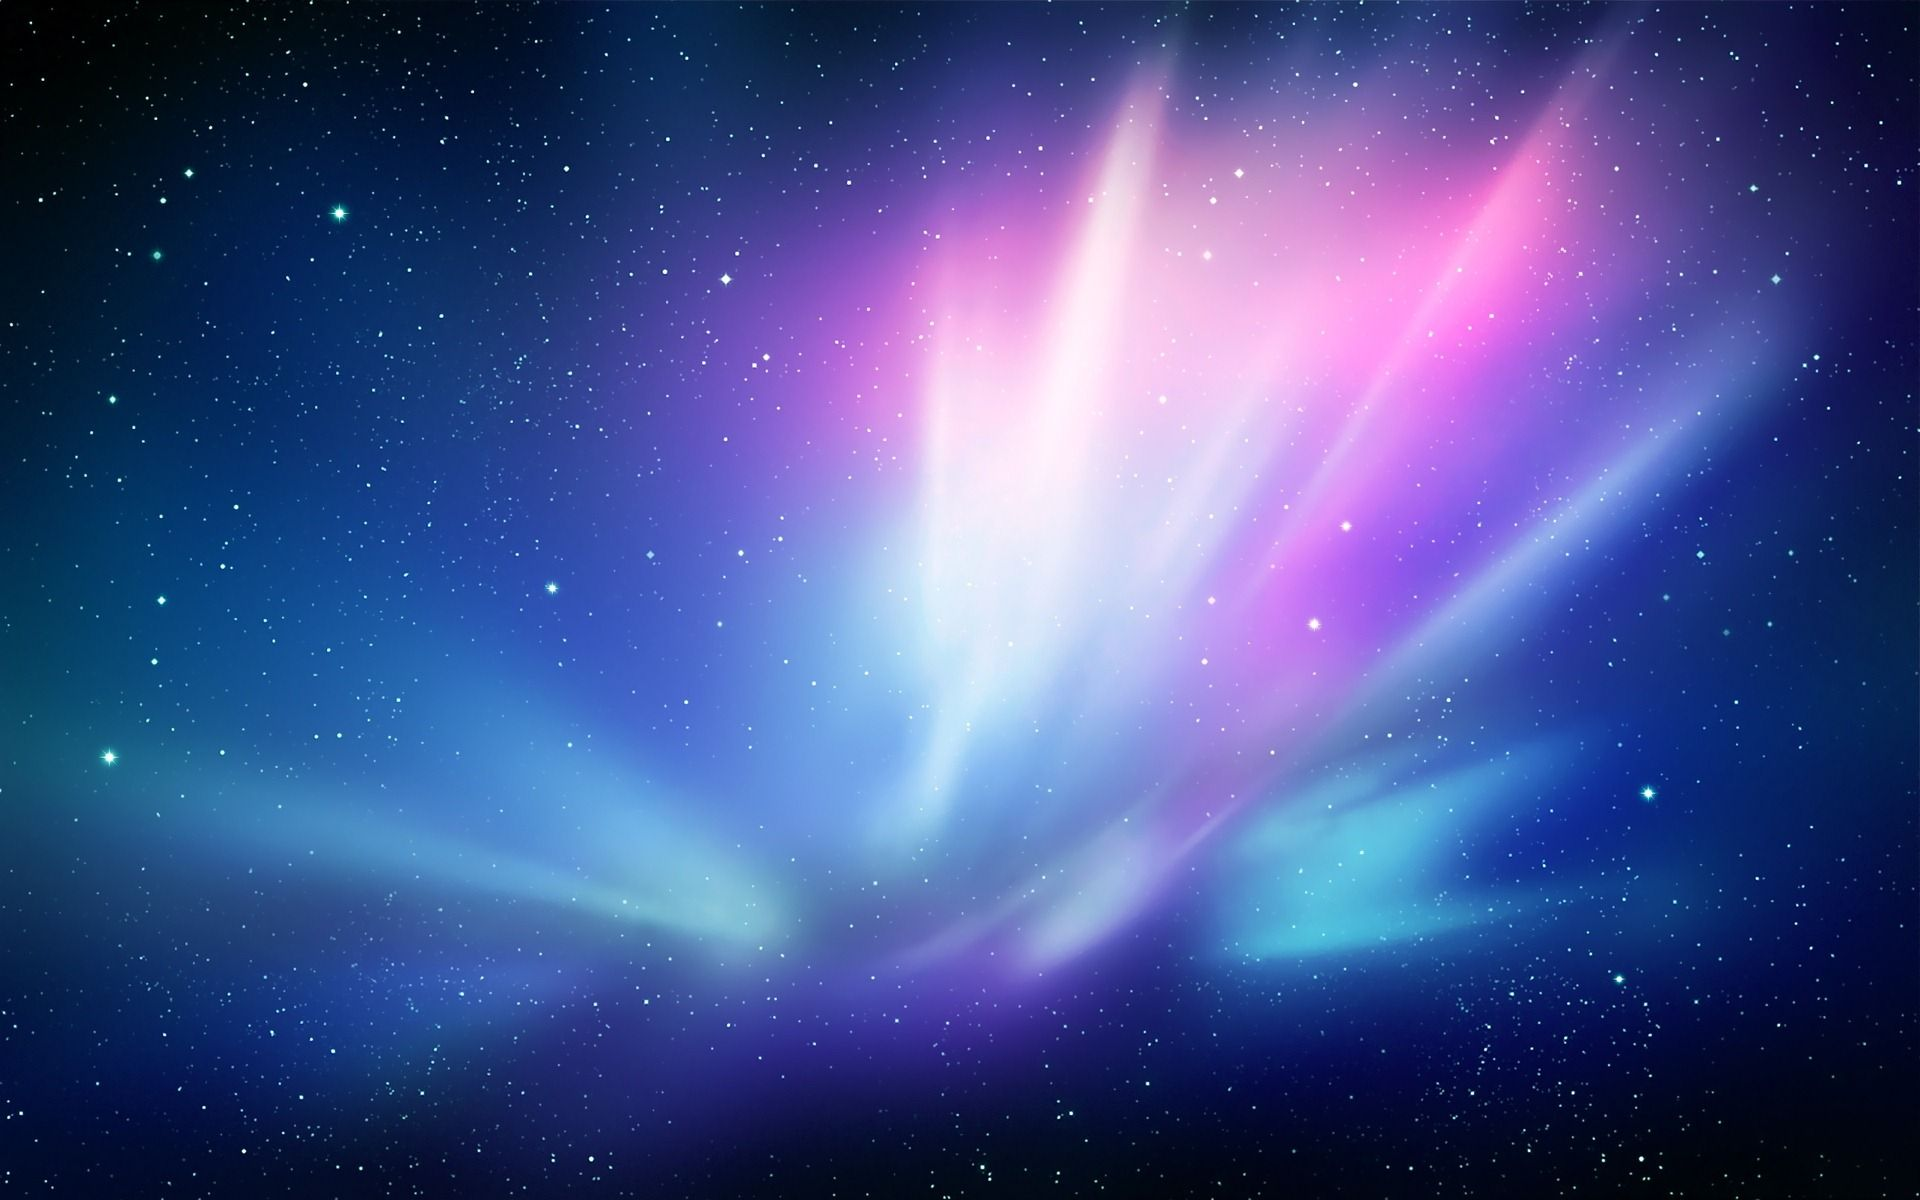 Free P HD Apple Wallpapers  Free wallpaper download 1920x1200